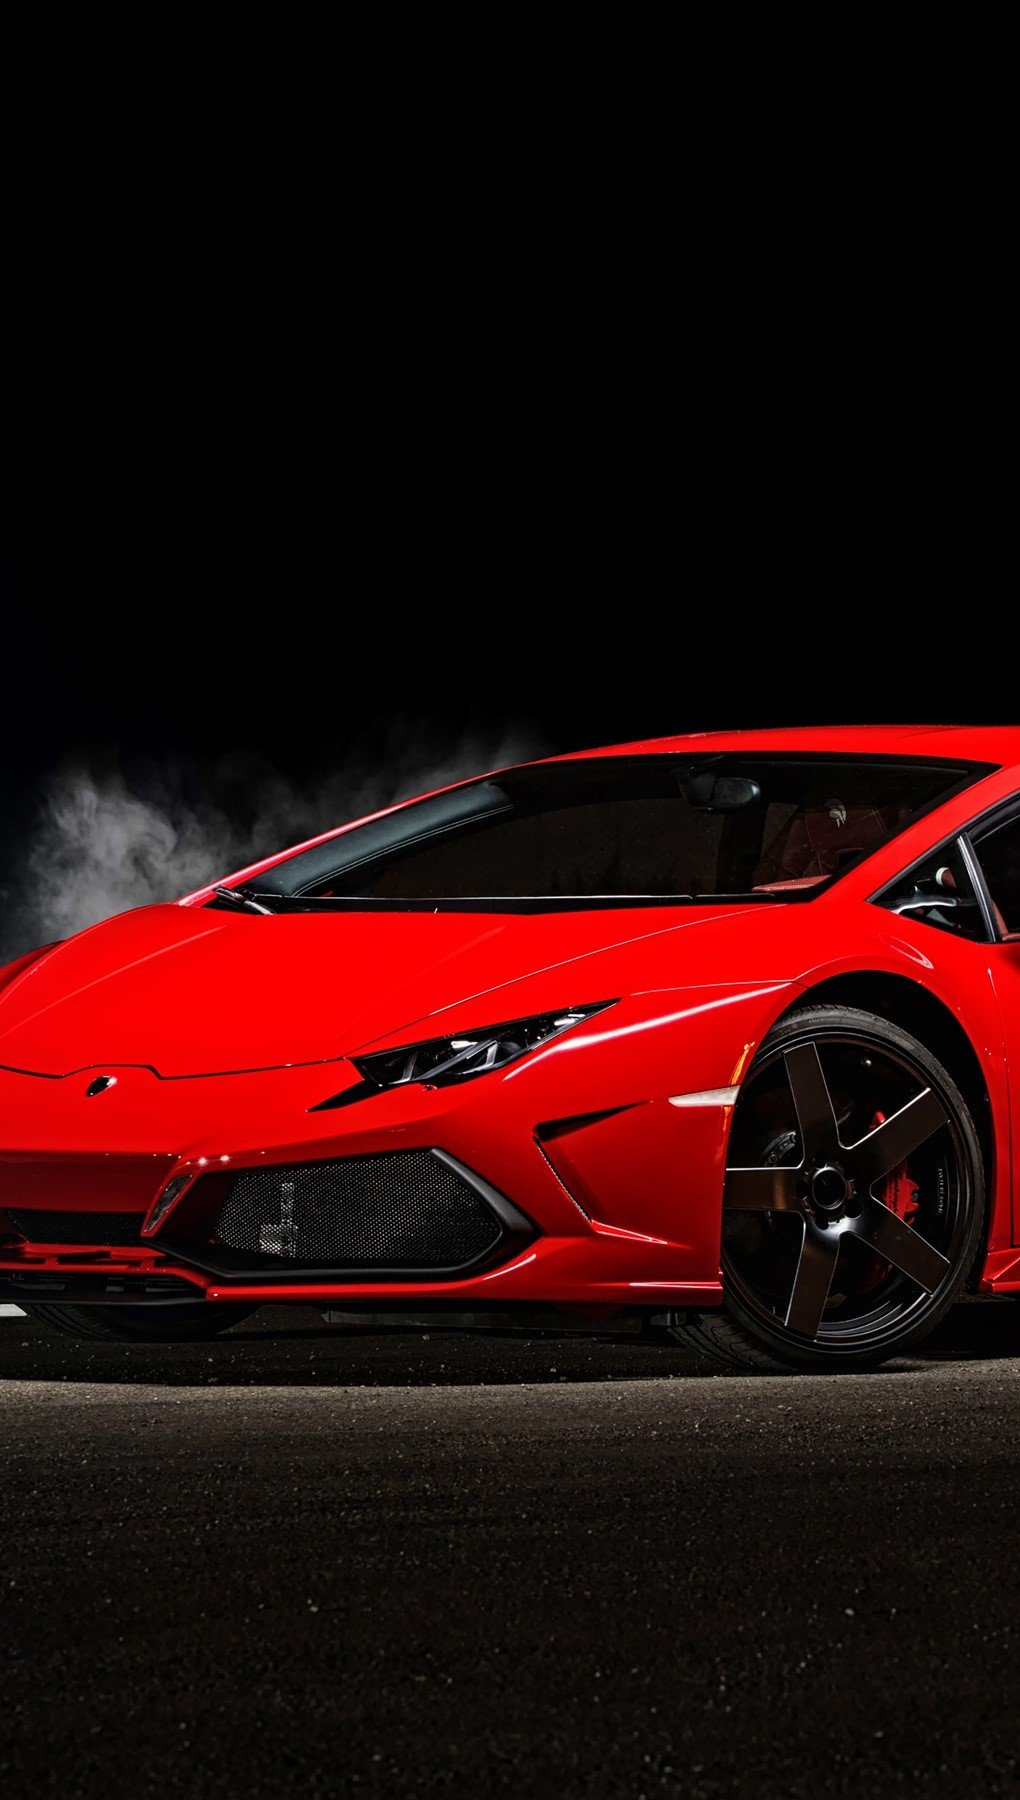 Wallpaper Ares Design Lamborghini Huracan Vertical